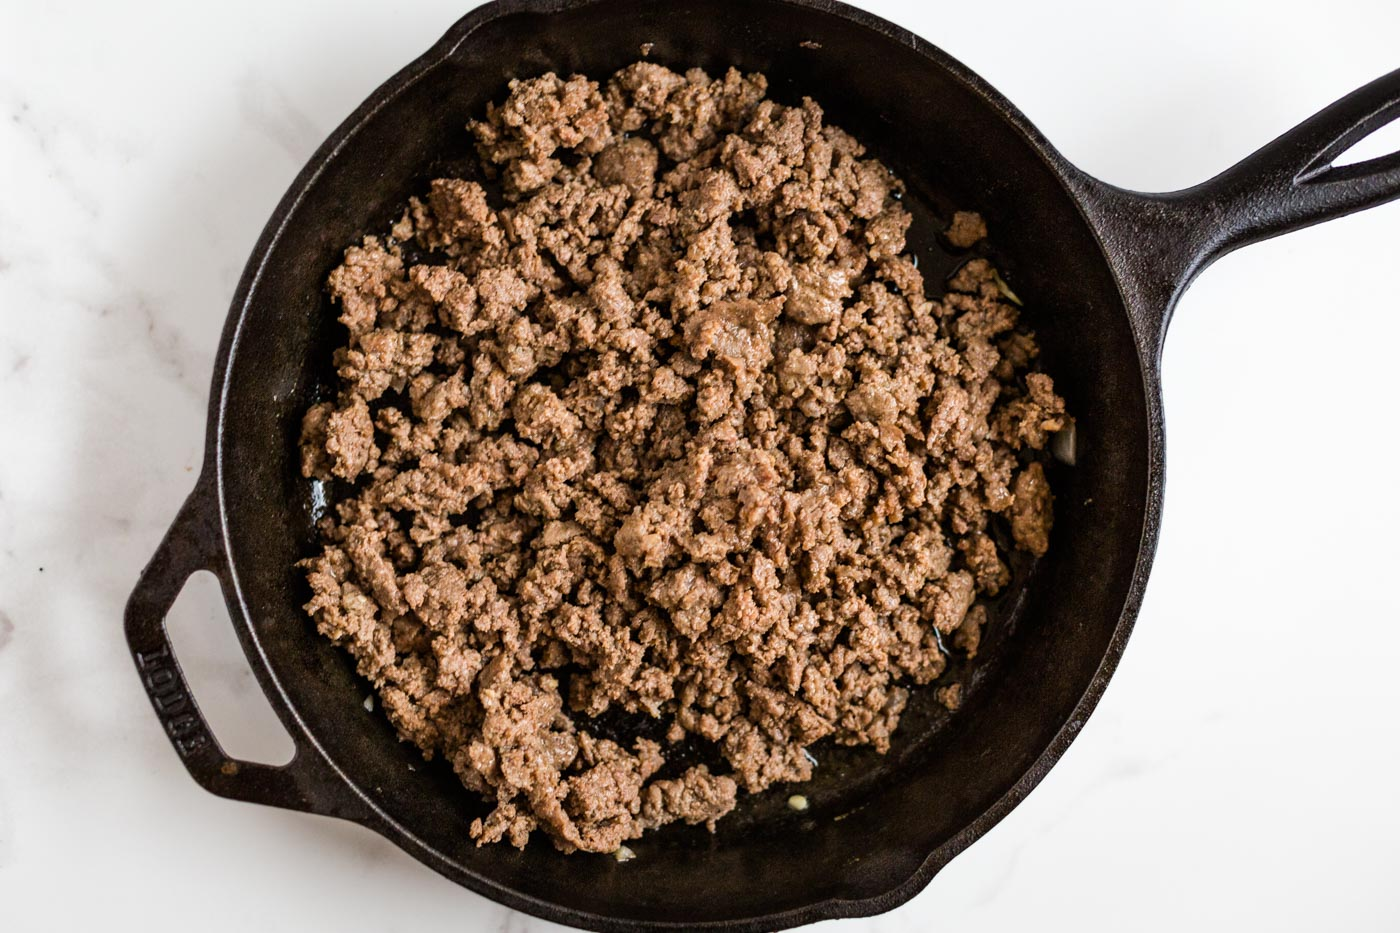 Cooked Breakfast sausage in cast iron skillet